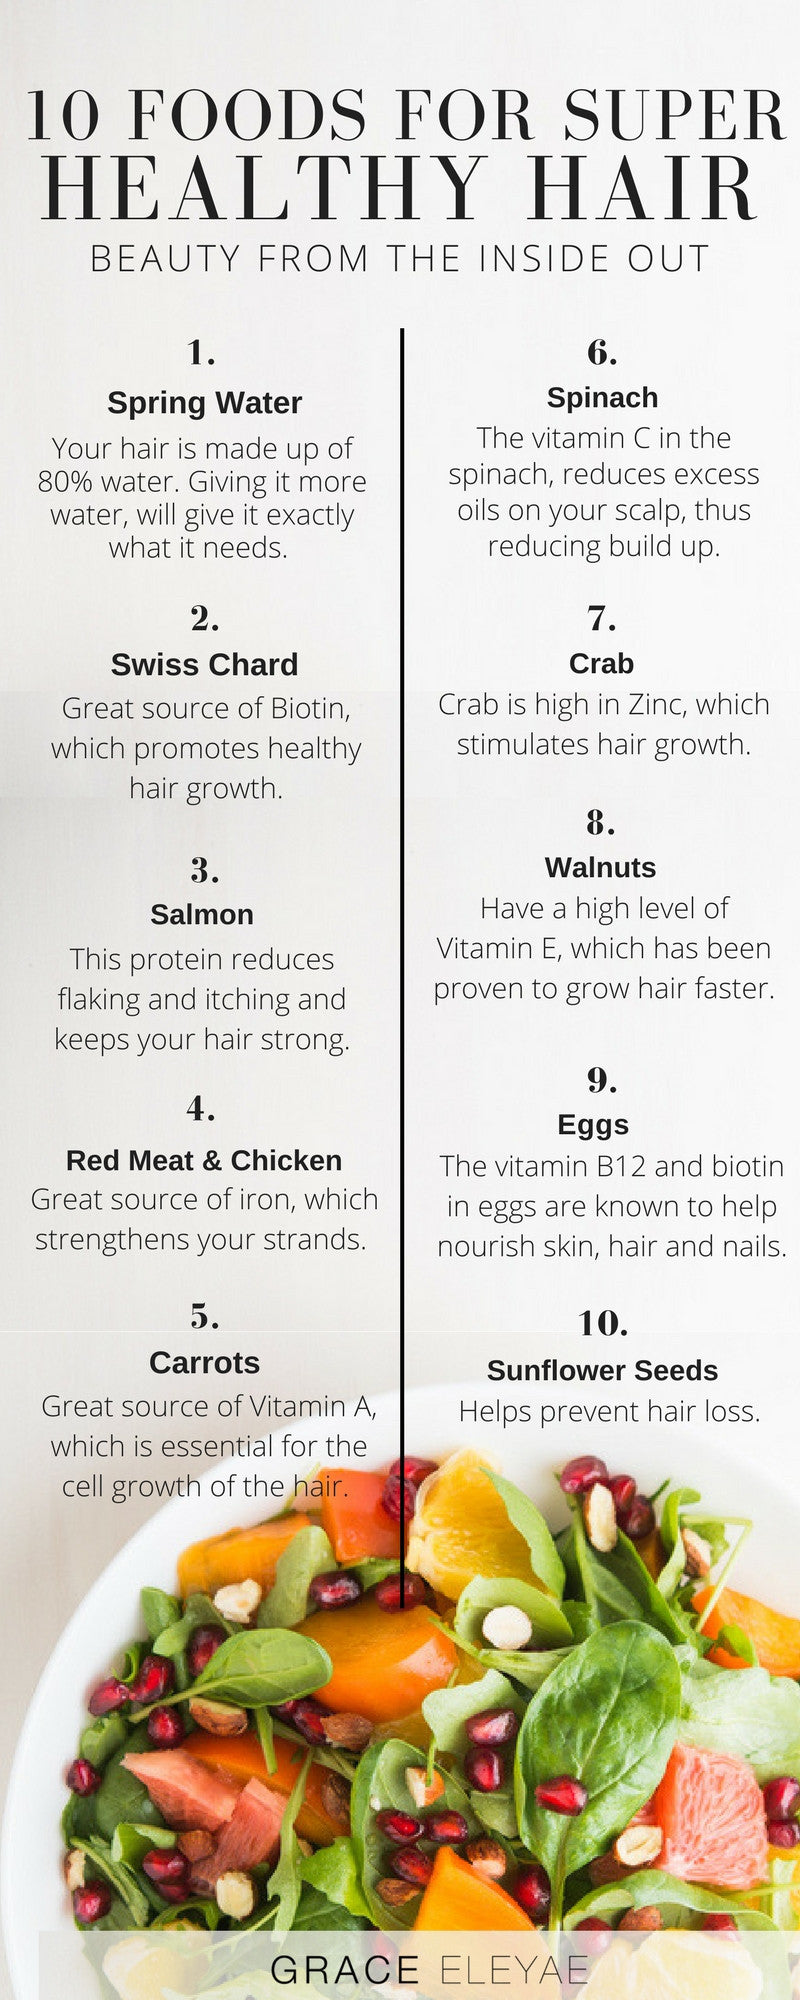 10 Amazing Foods for Super Healthy Hair